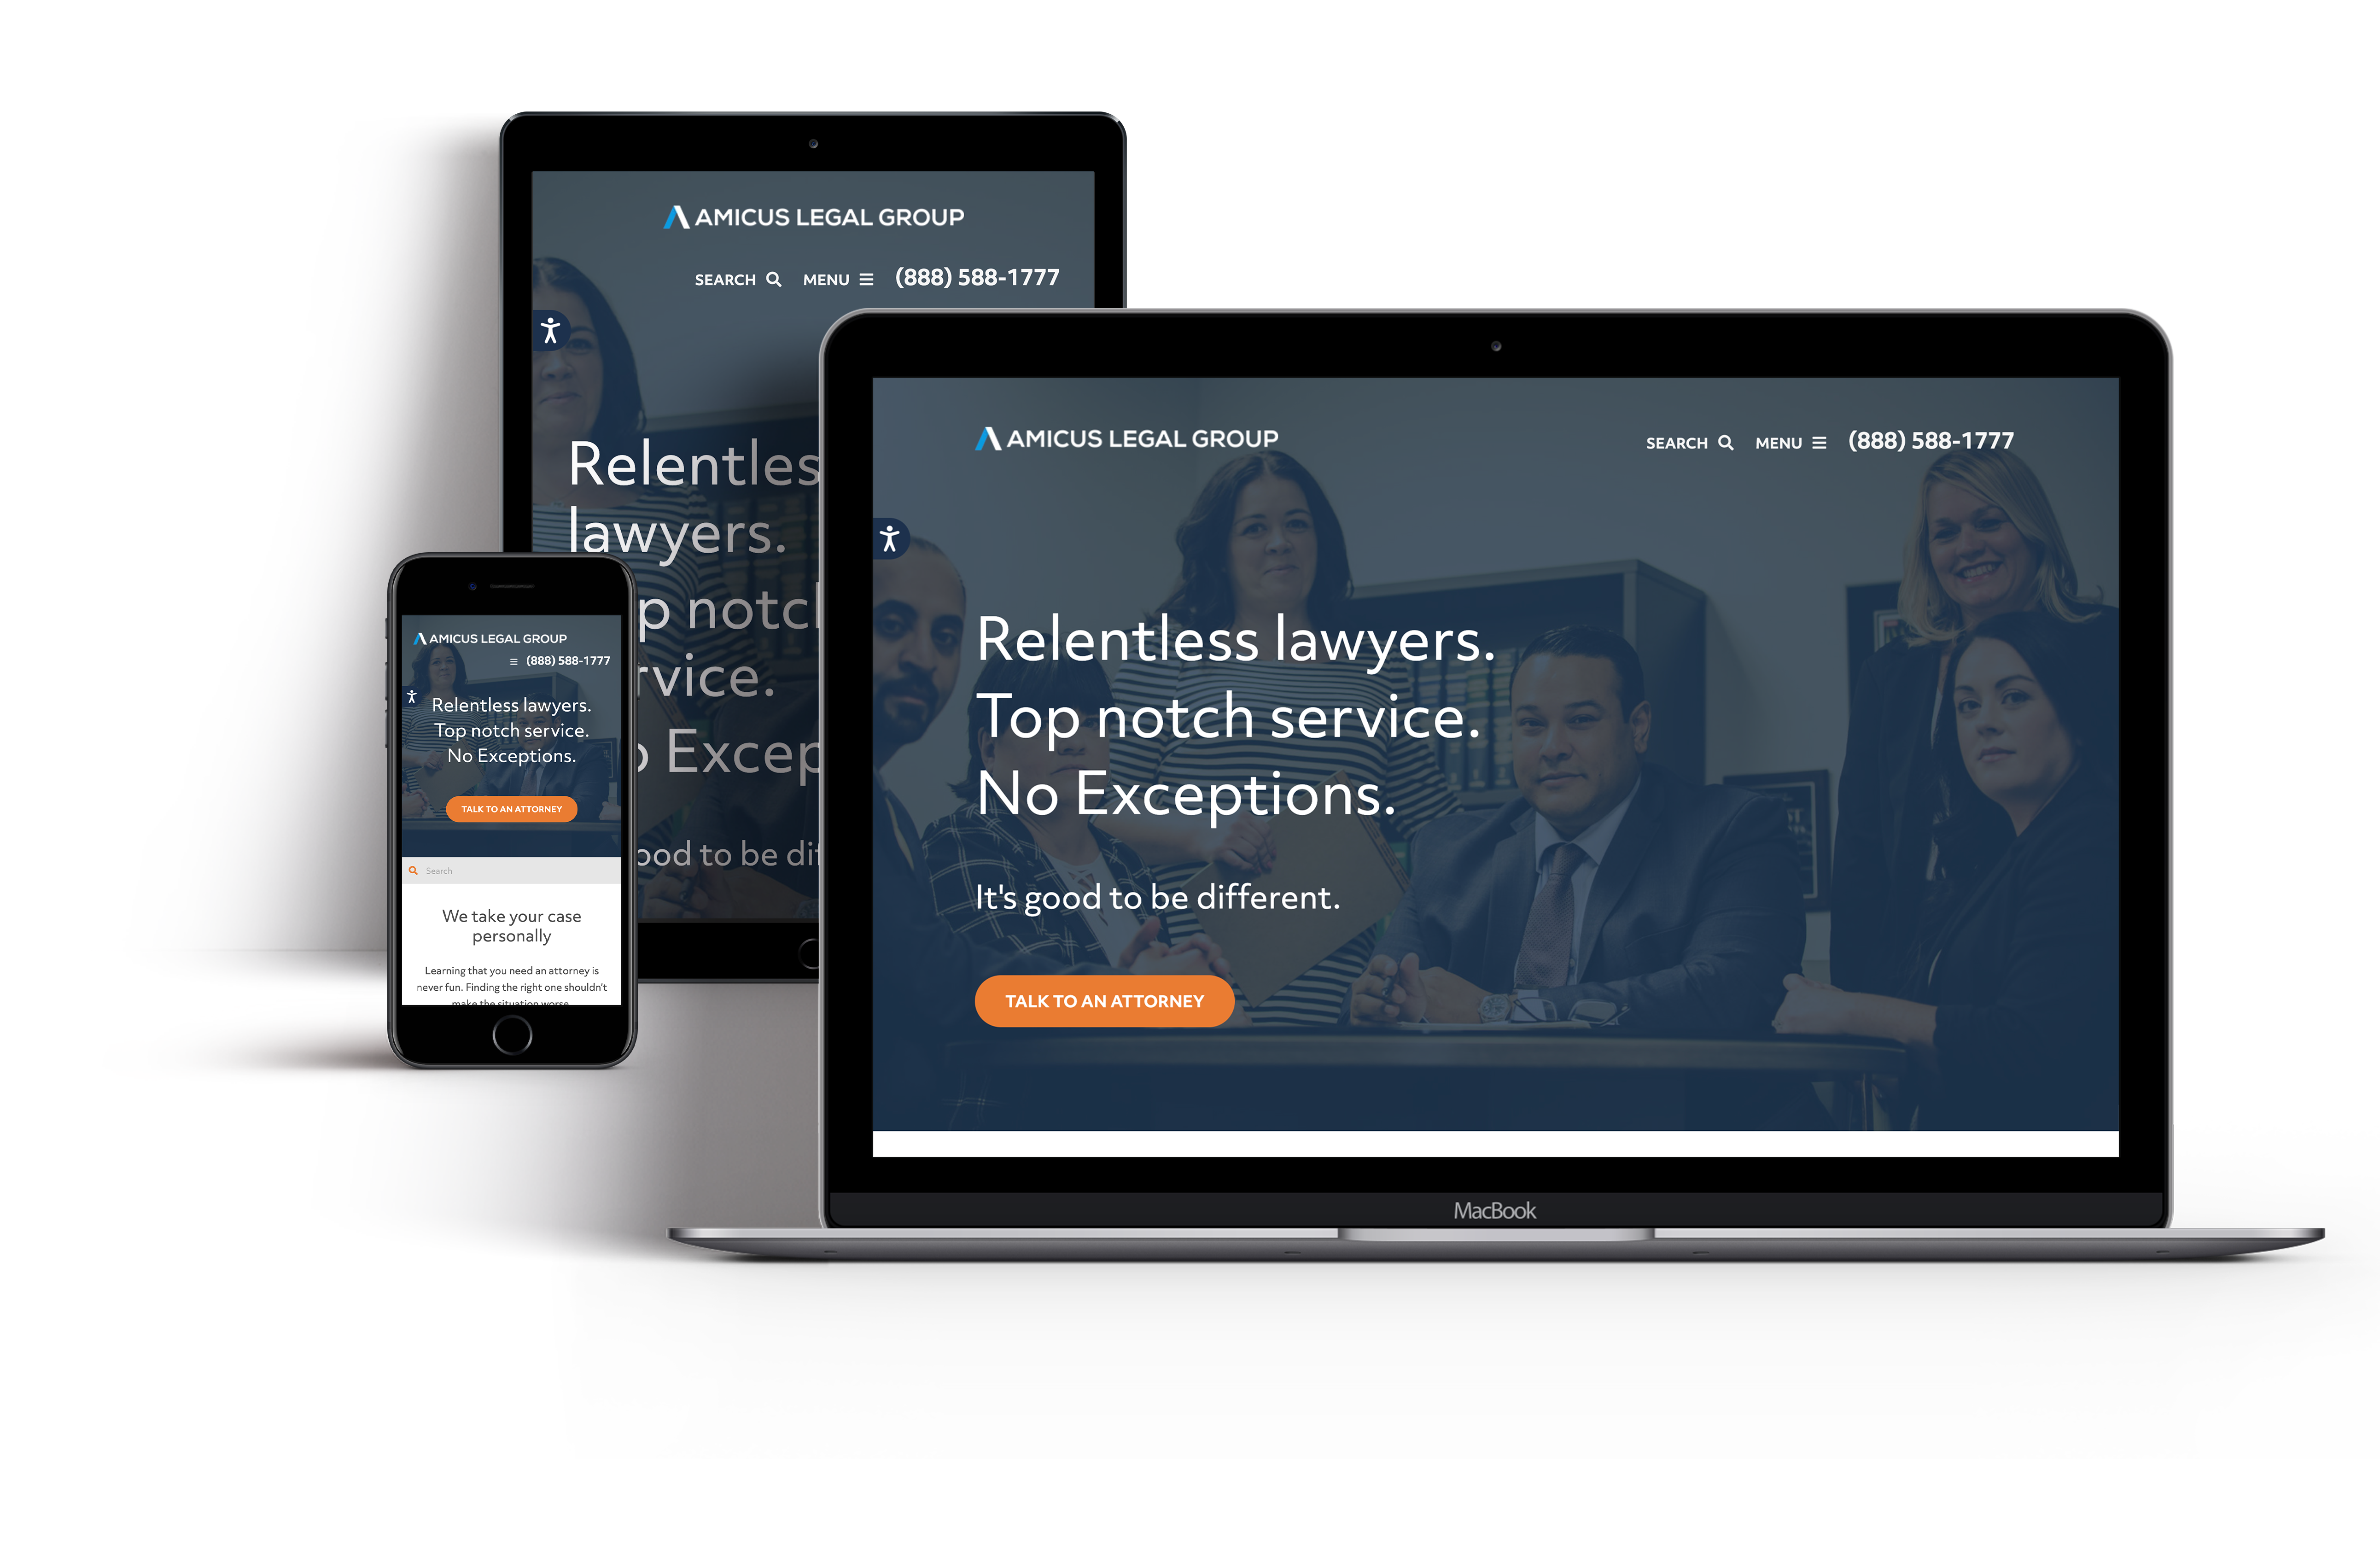 Amicus Legal Group